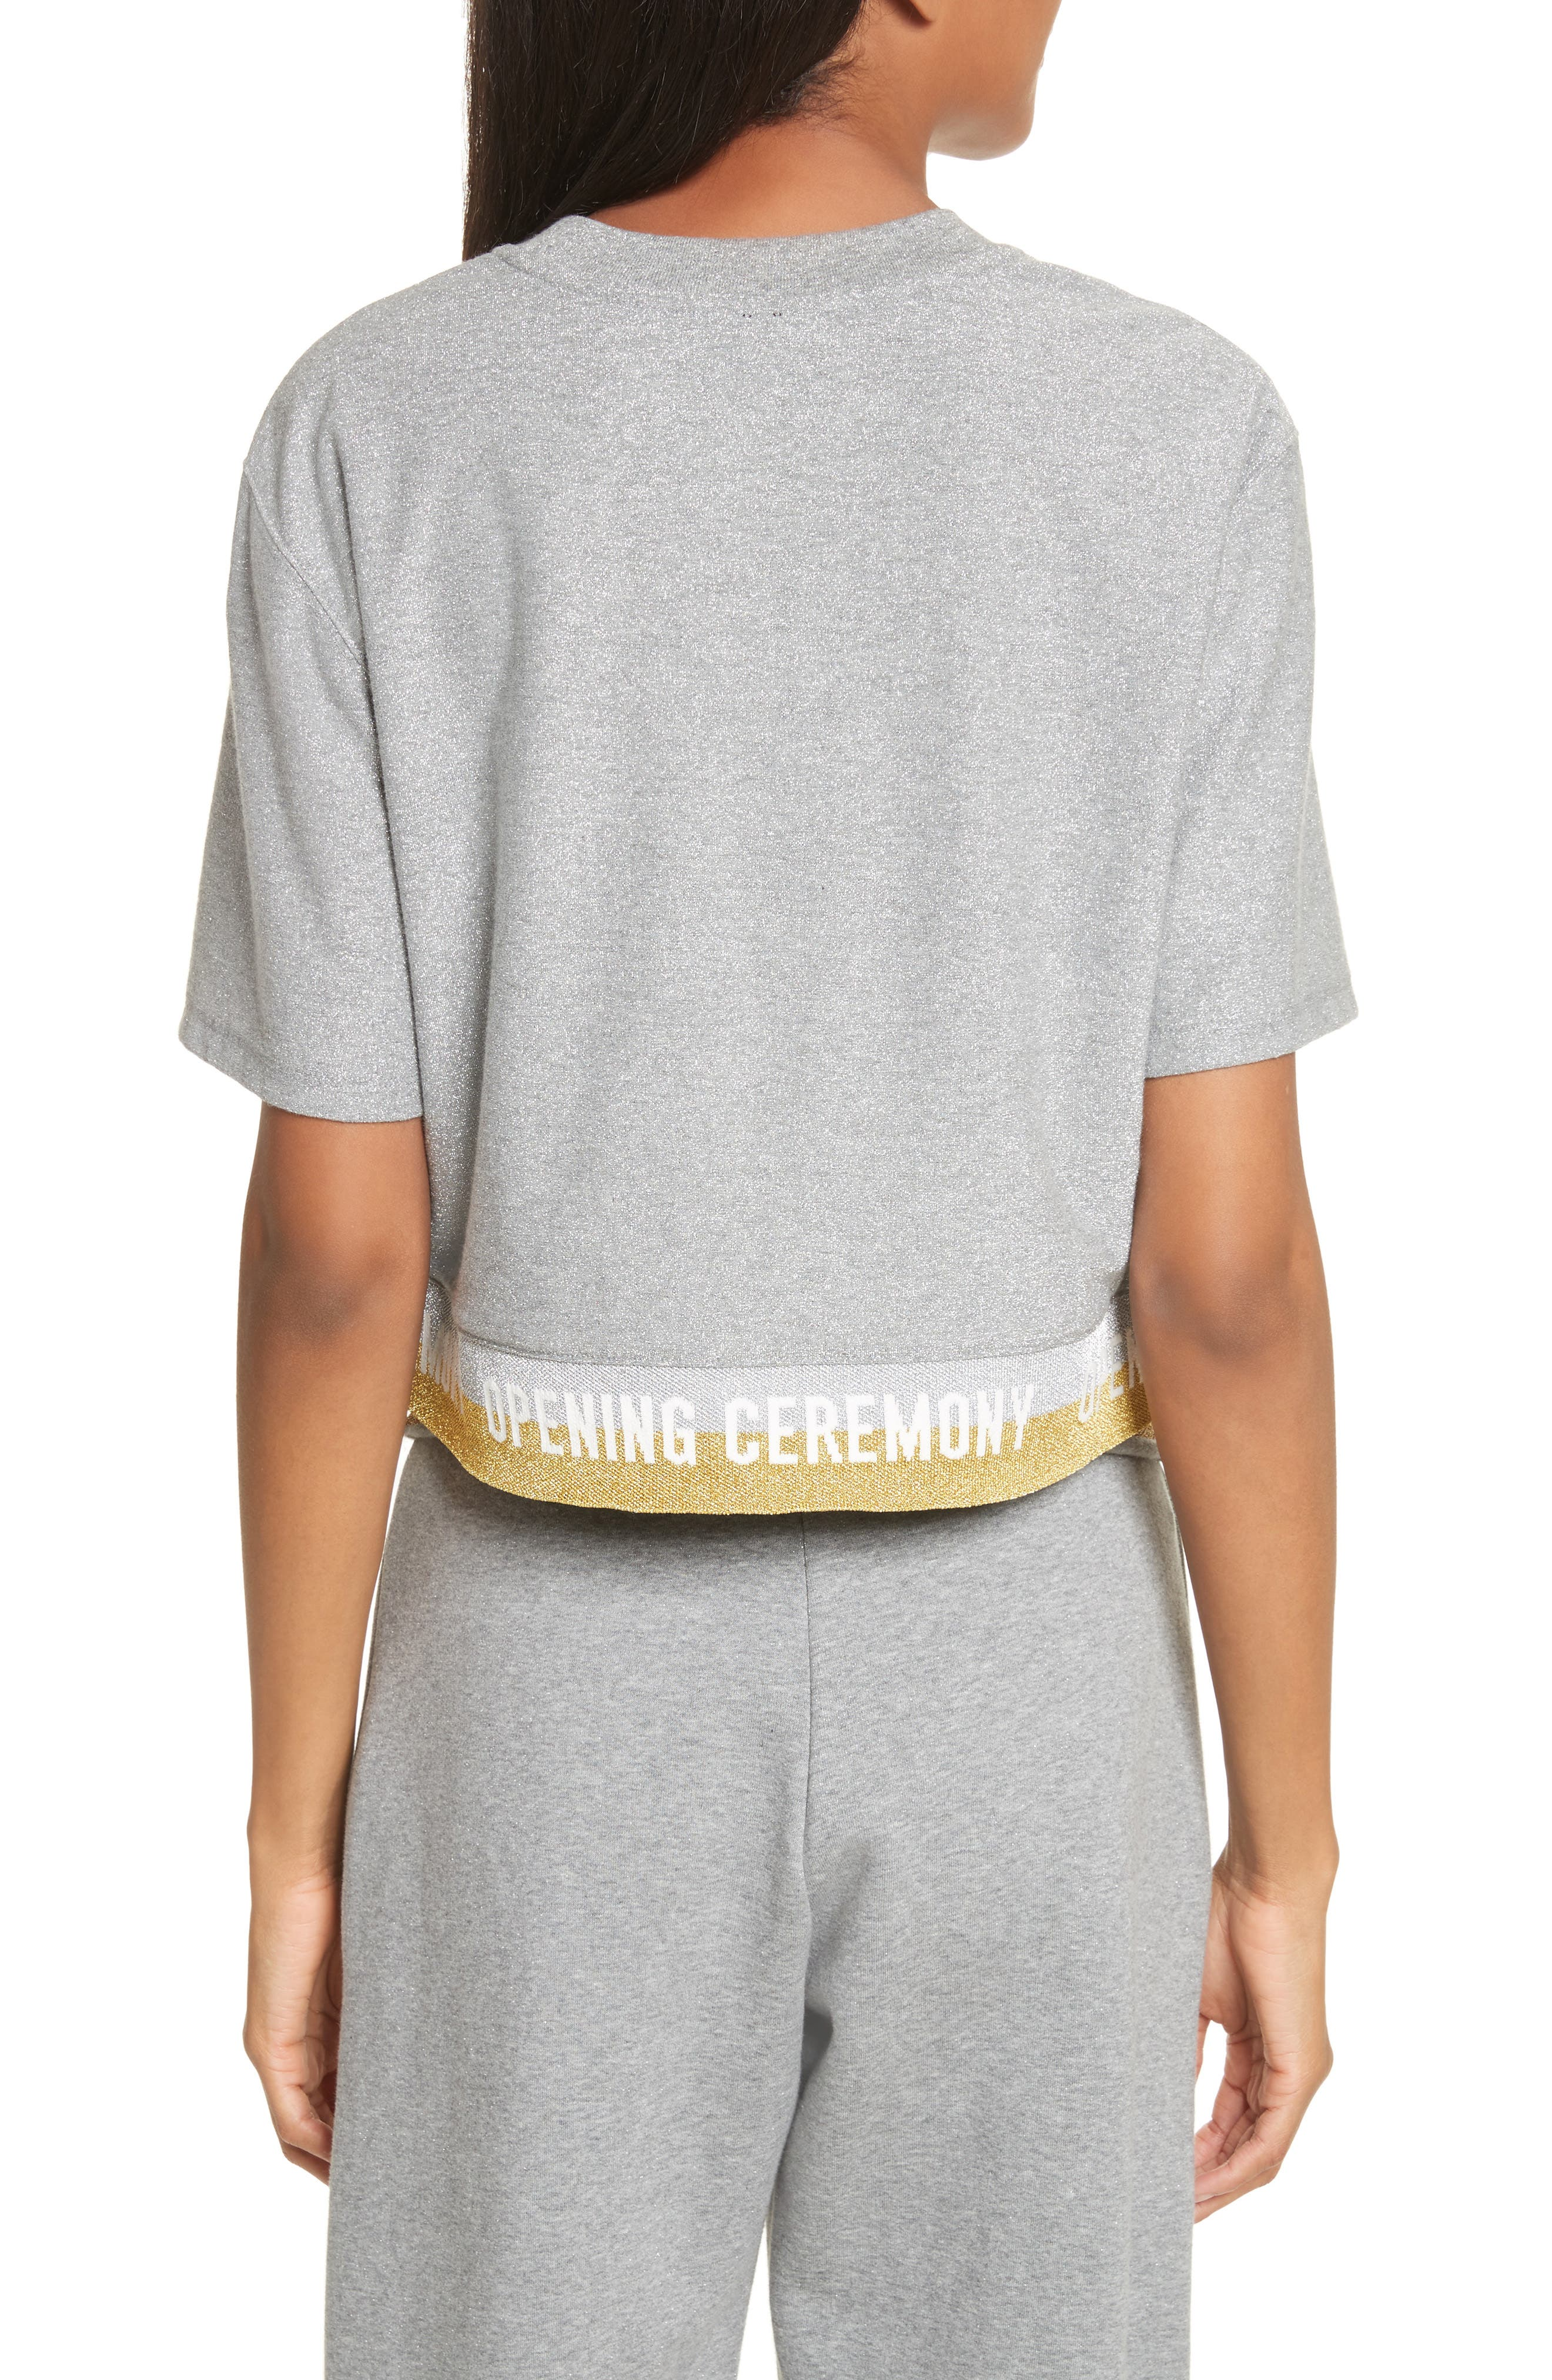 Alternate Image 3  - Opening Ceremony Elastic Logo Crop Tee (Limited Edition)